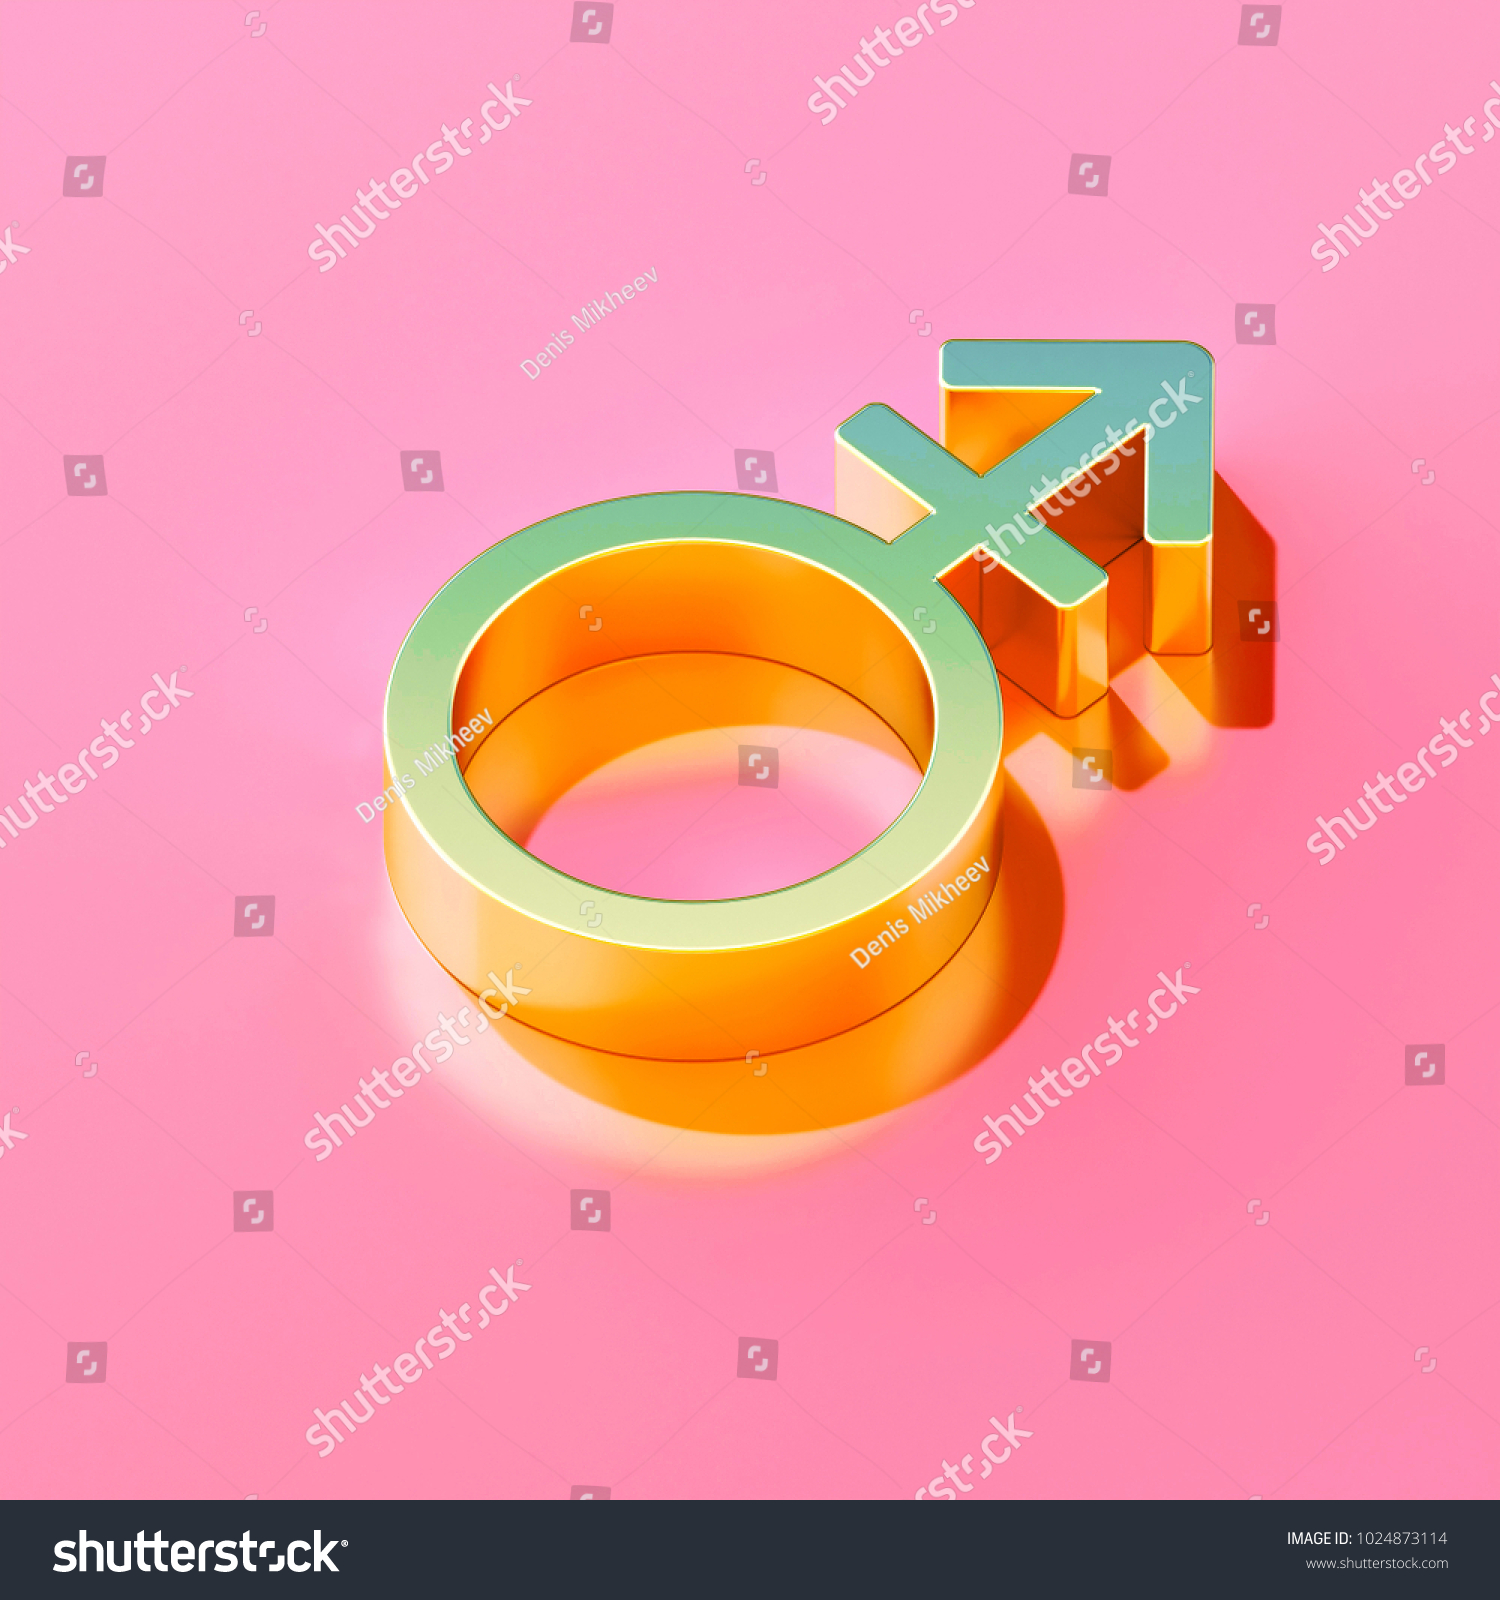 Icon gold gender mars stroke on stock illustration 1024873114 icon of gold gender mars stroke on the candy pink background 3d illustration of man buycottarizona Gallery